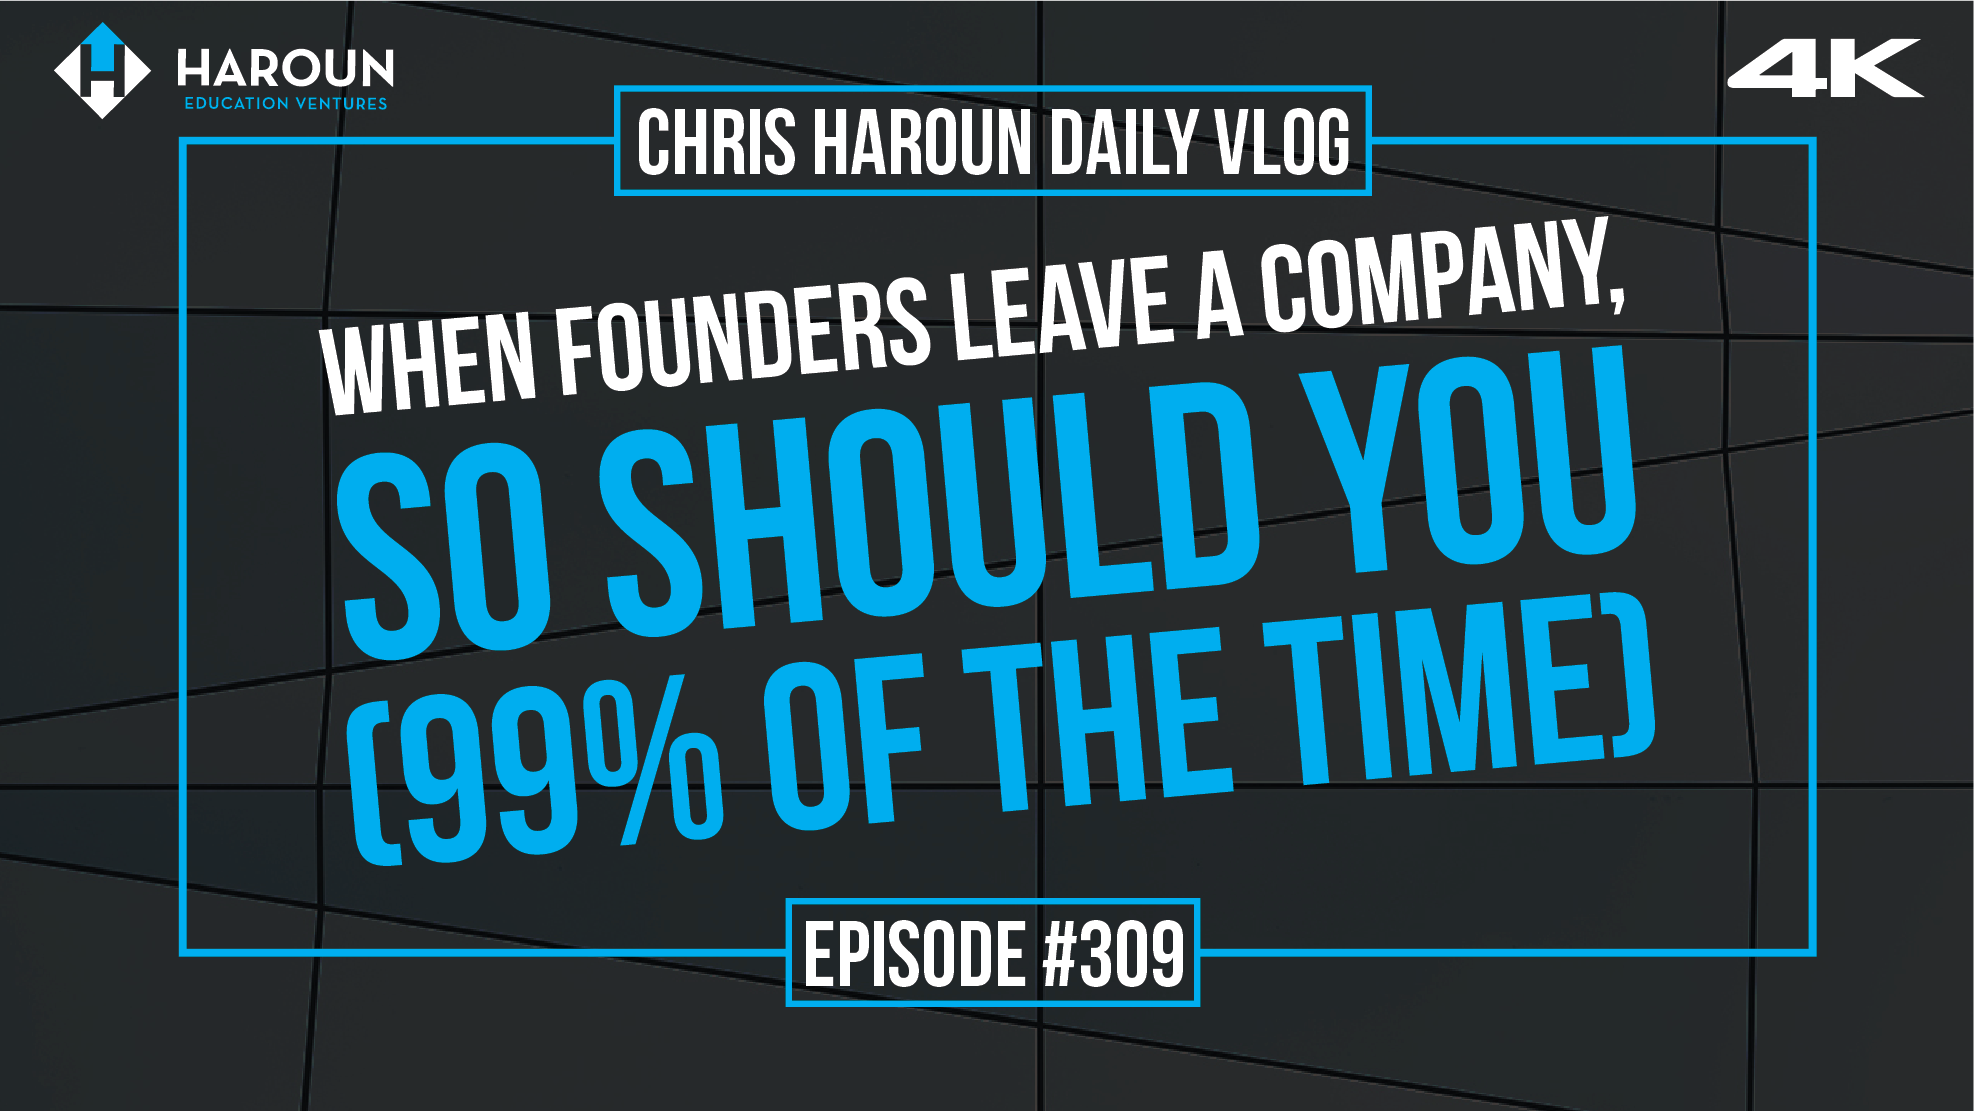 VLOG_309_4_3_2019_When Founders Leave a Company, So Should You (99% of the Time).png